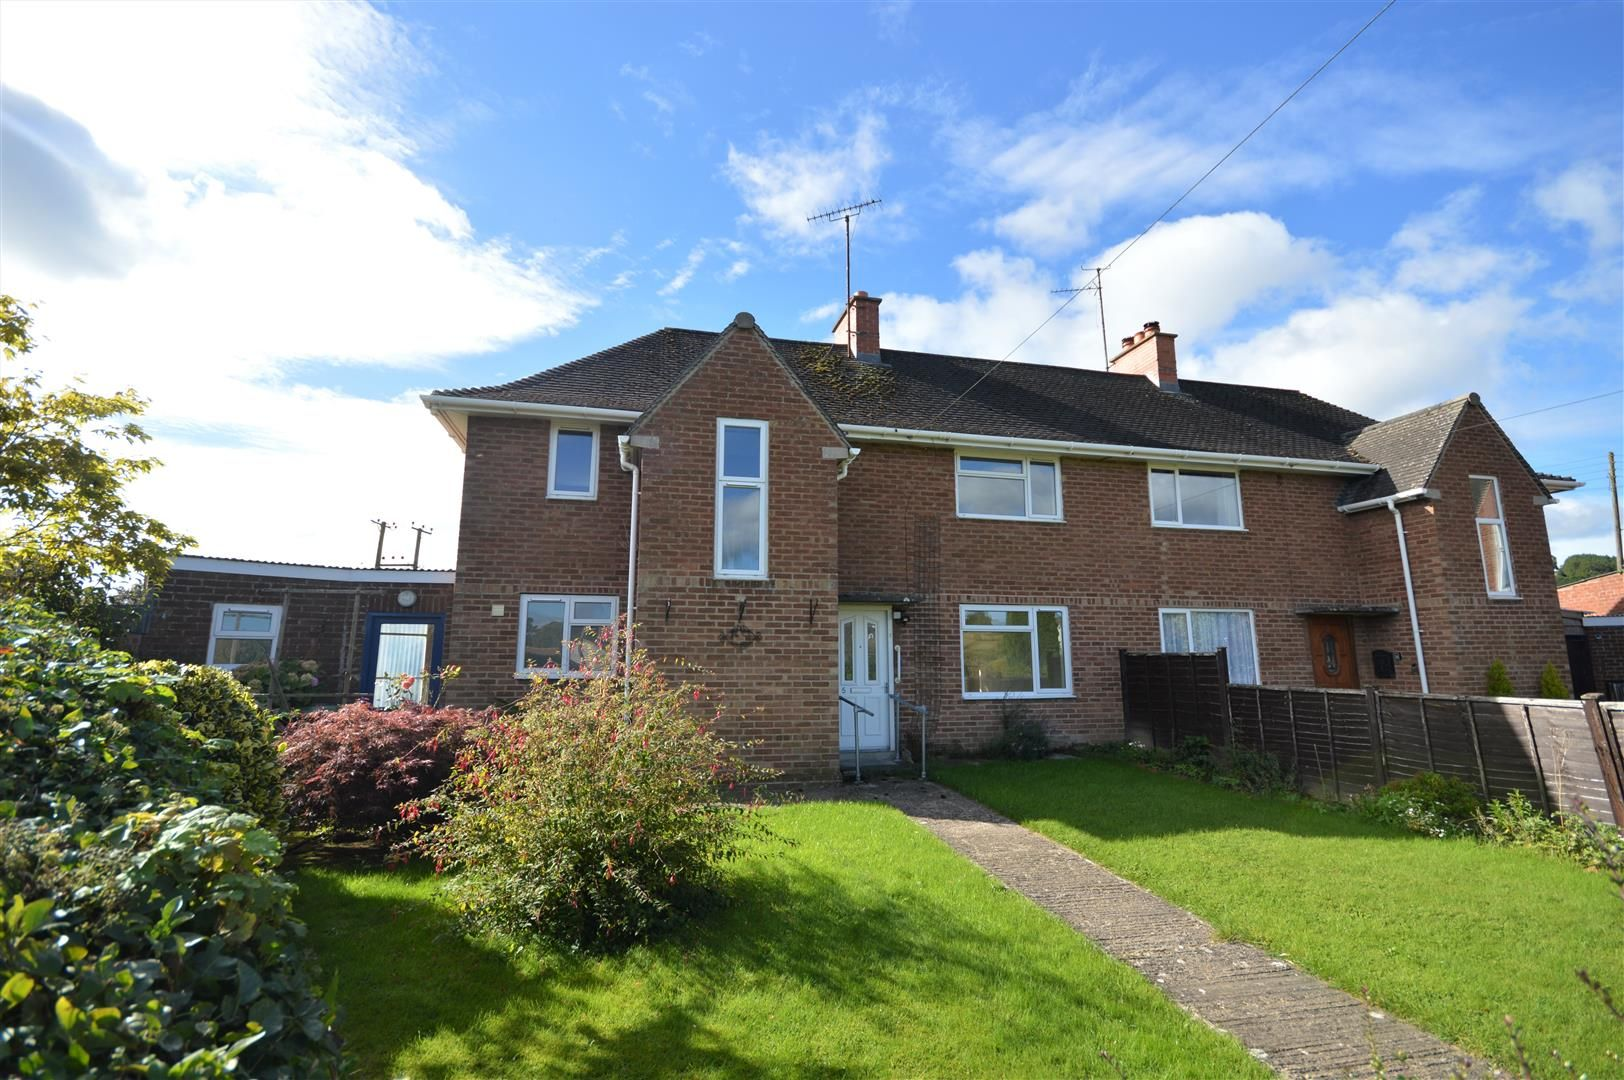 3 bed semi-detached for sale in Richards Castle, SY8